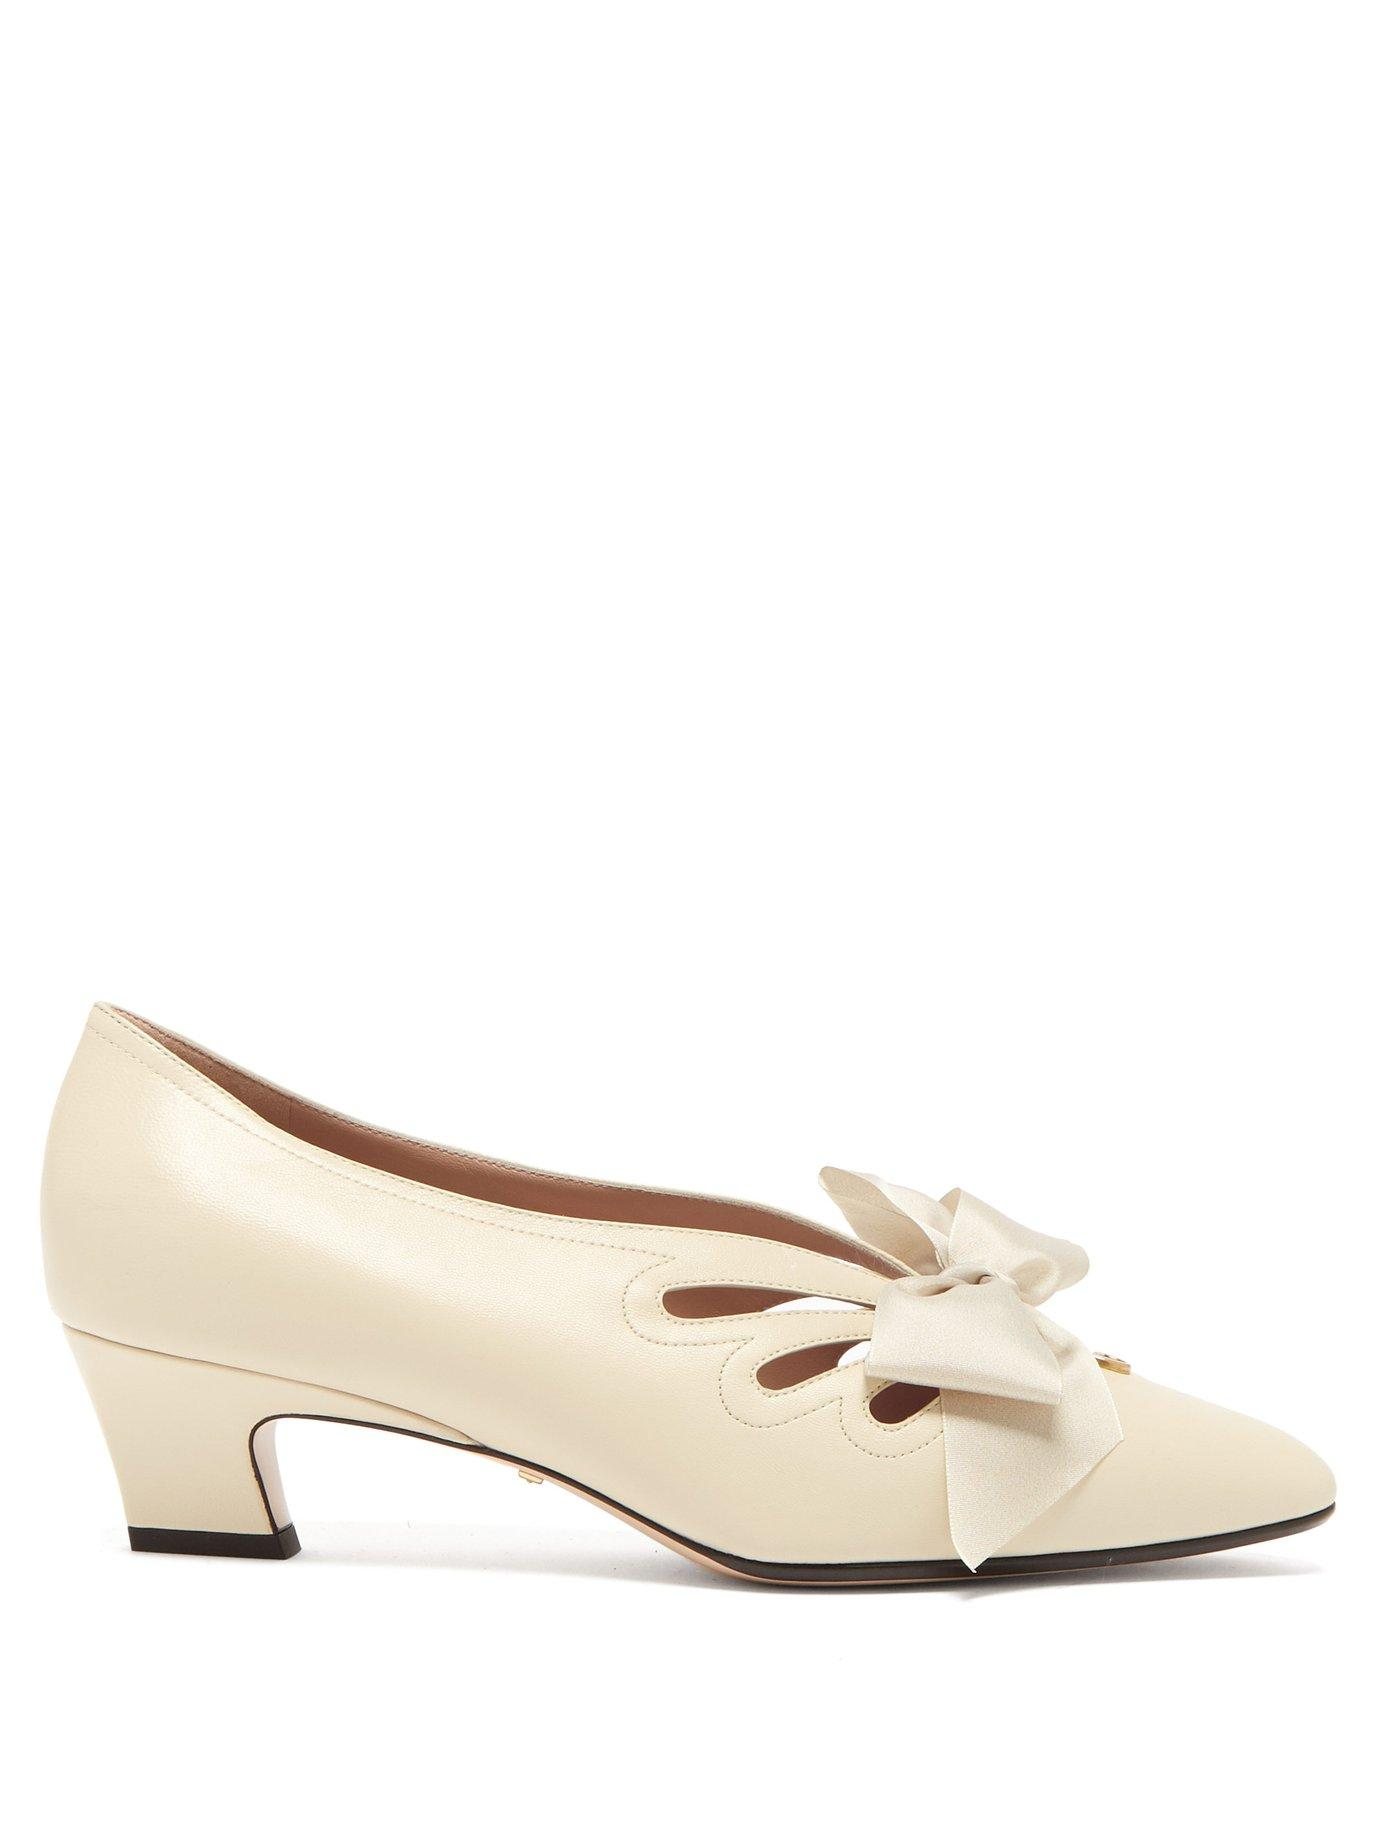 43b14d49643 Lyst - Gucci Berith Bow Leather Pumps in Natural